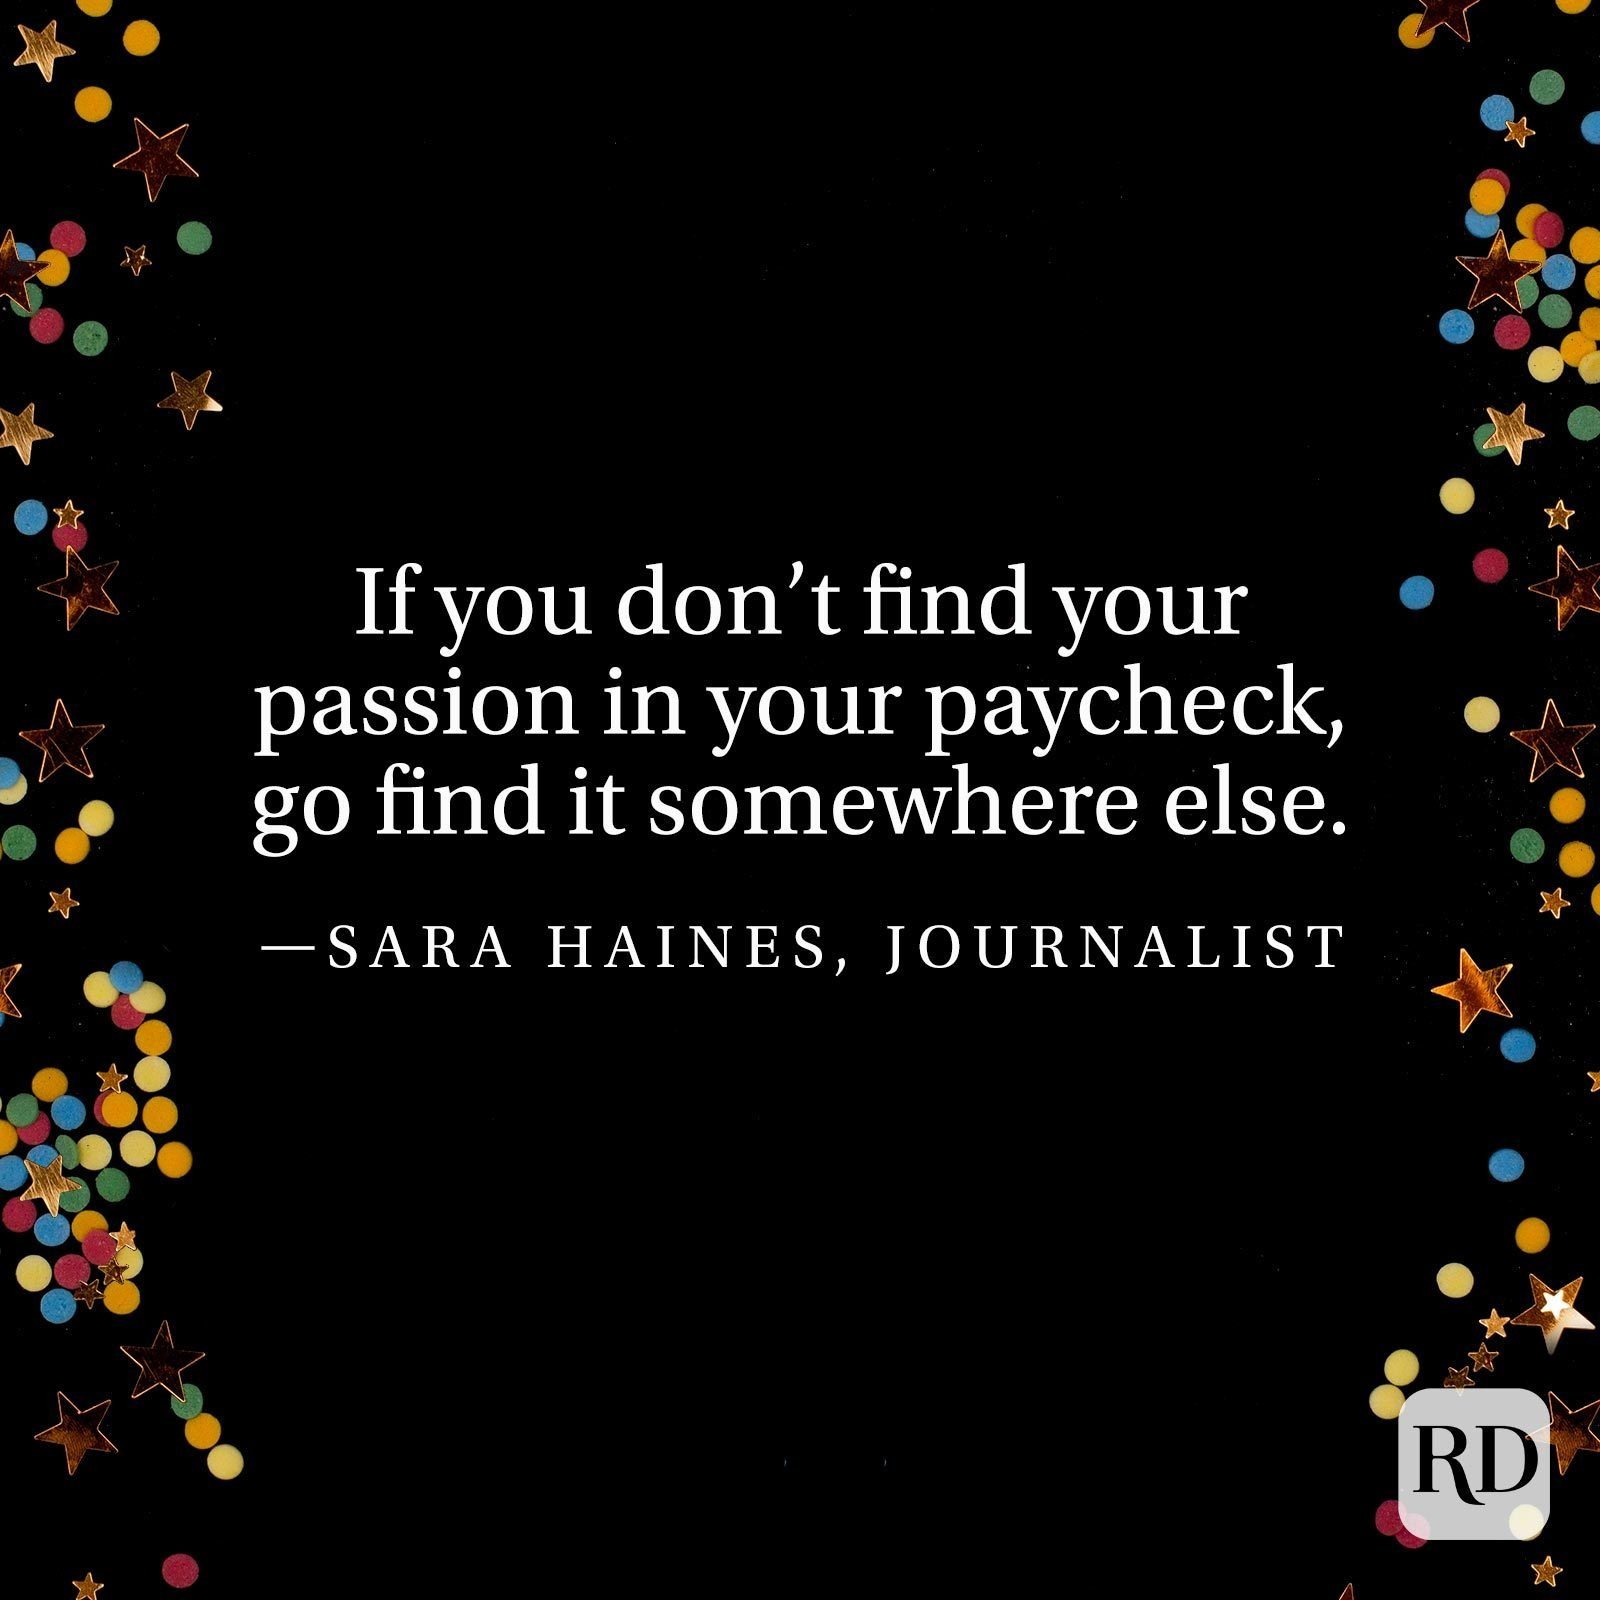 """If you don't find your passion in your paycheck, go find it somewhere else."" —Sara Haines, journalist."